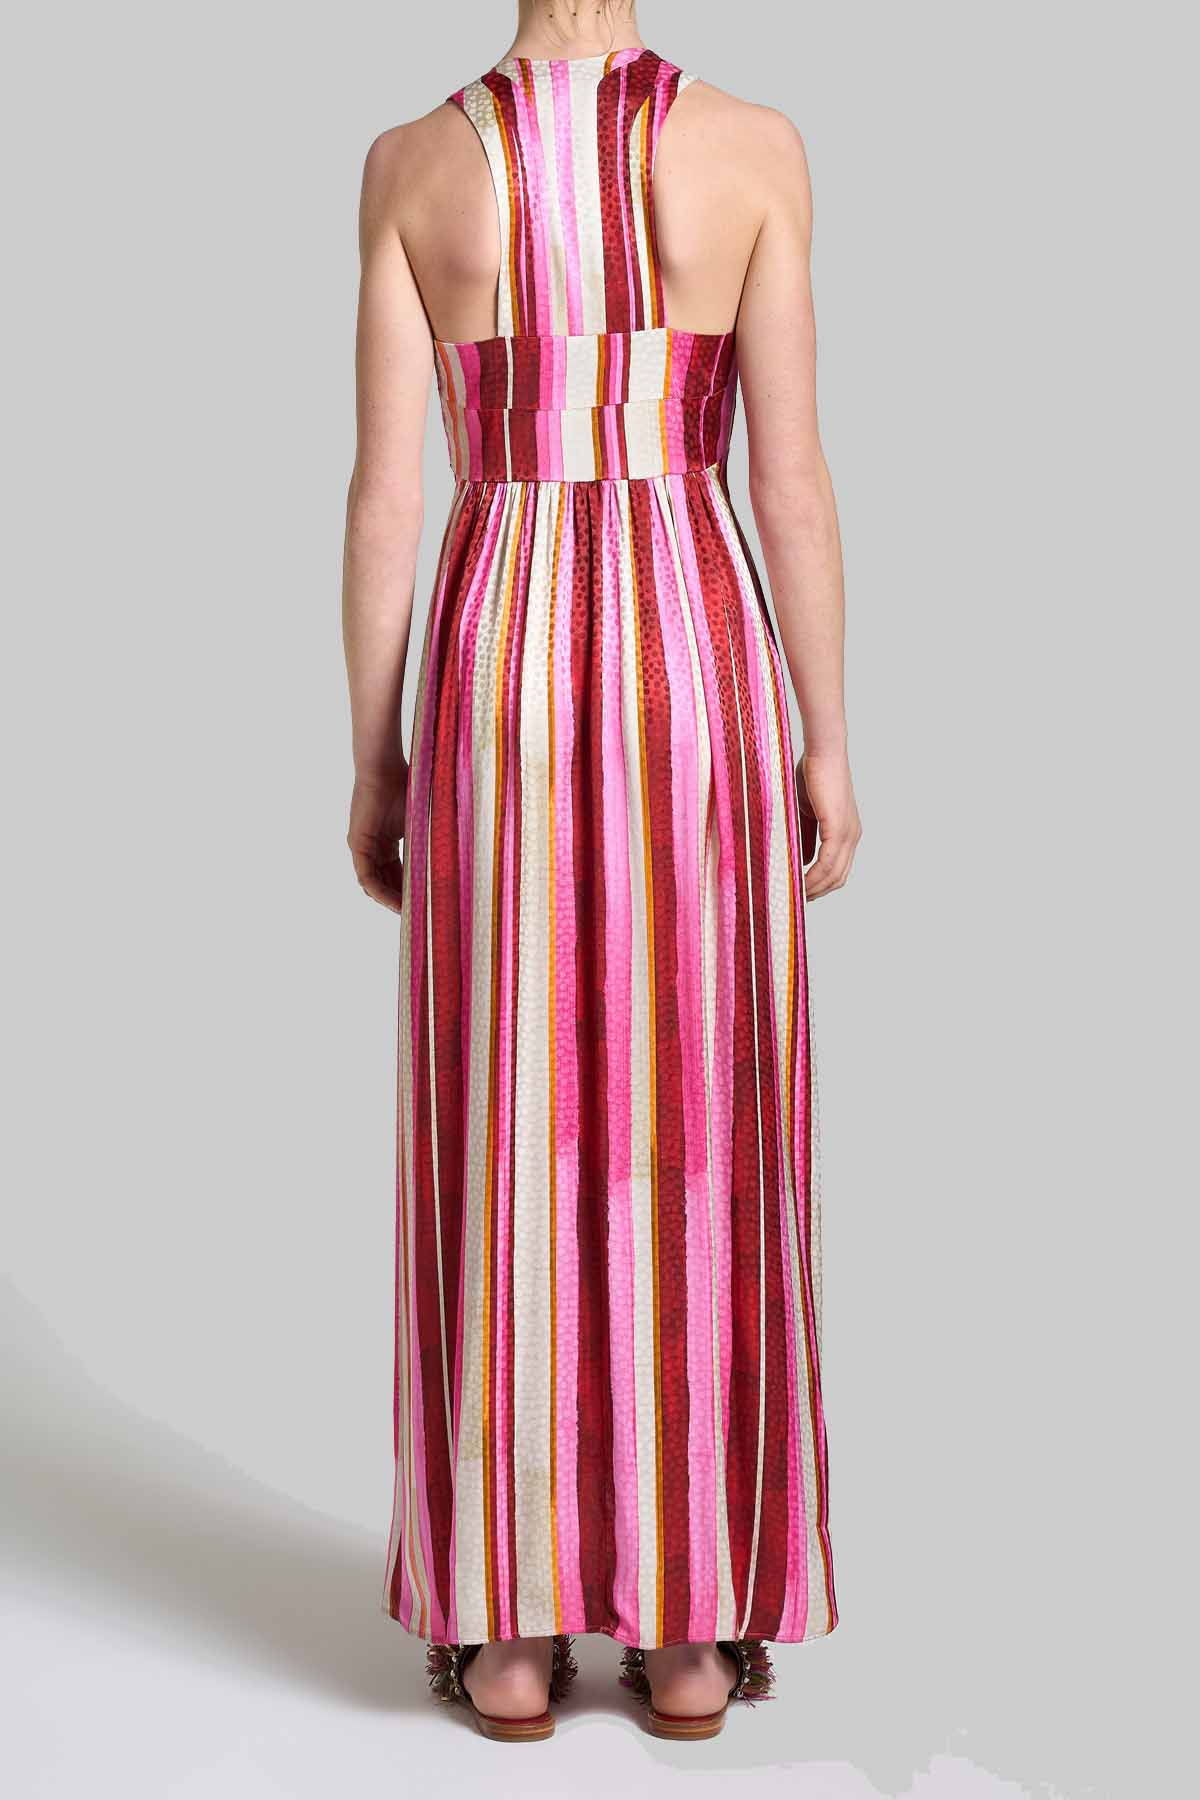 Women's Clothing Long Sleeveless Dress Stripes Jacquard with Pink and Red Pattern Maliparmi |  | JF642150557B3223